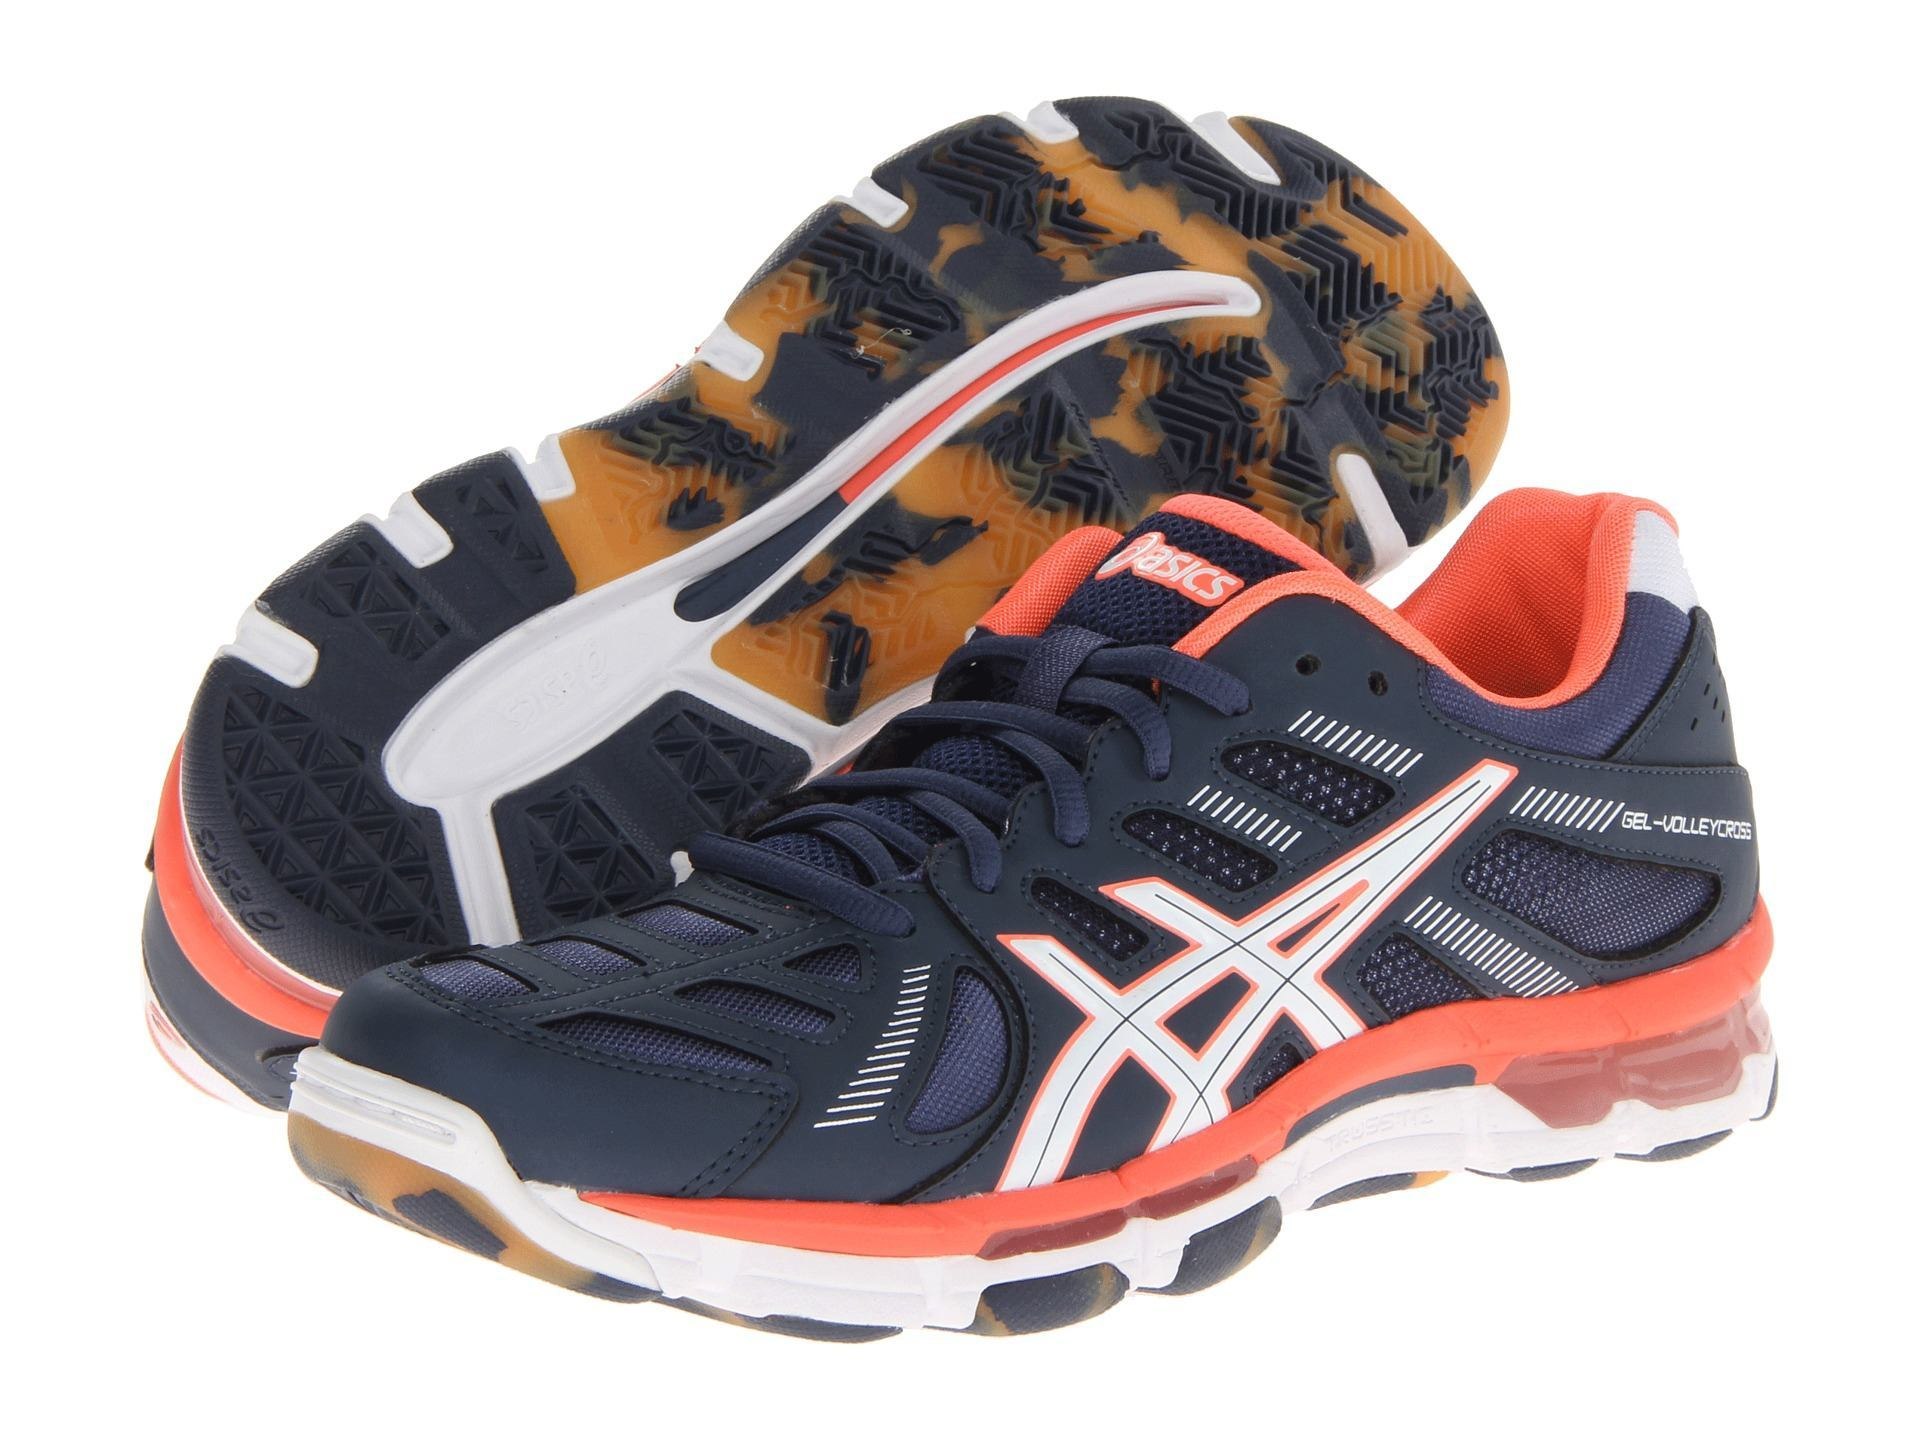 Asics Volleycross 3